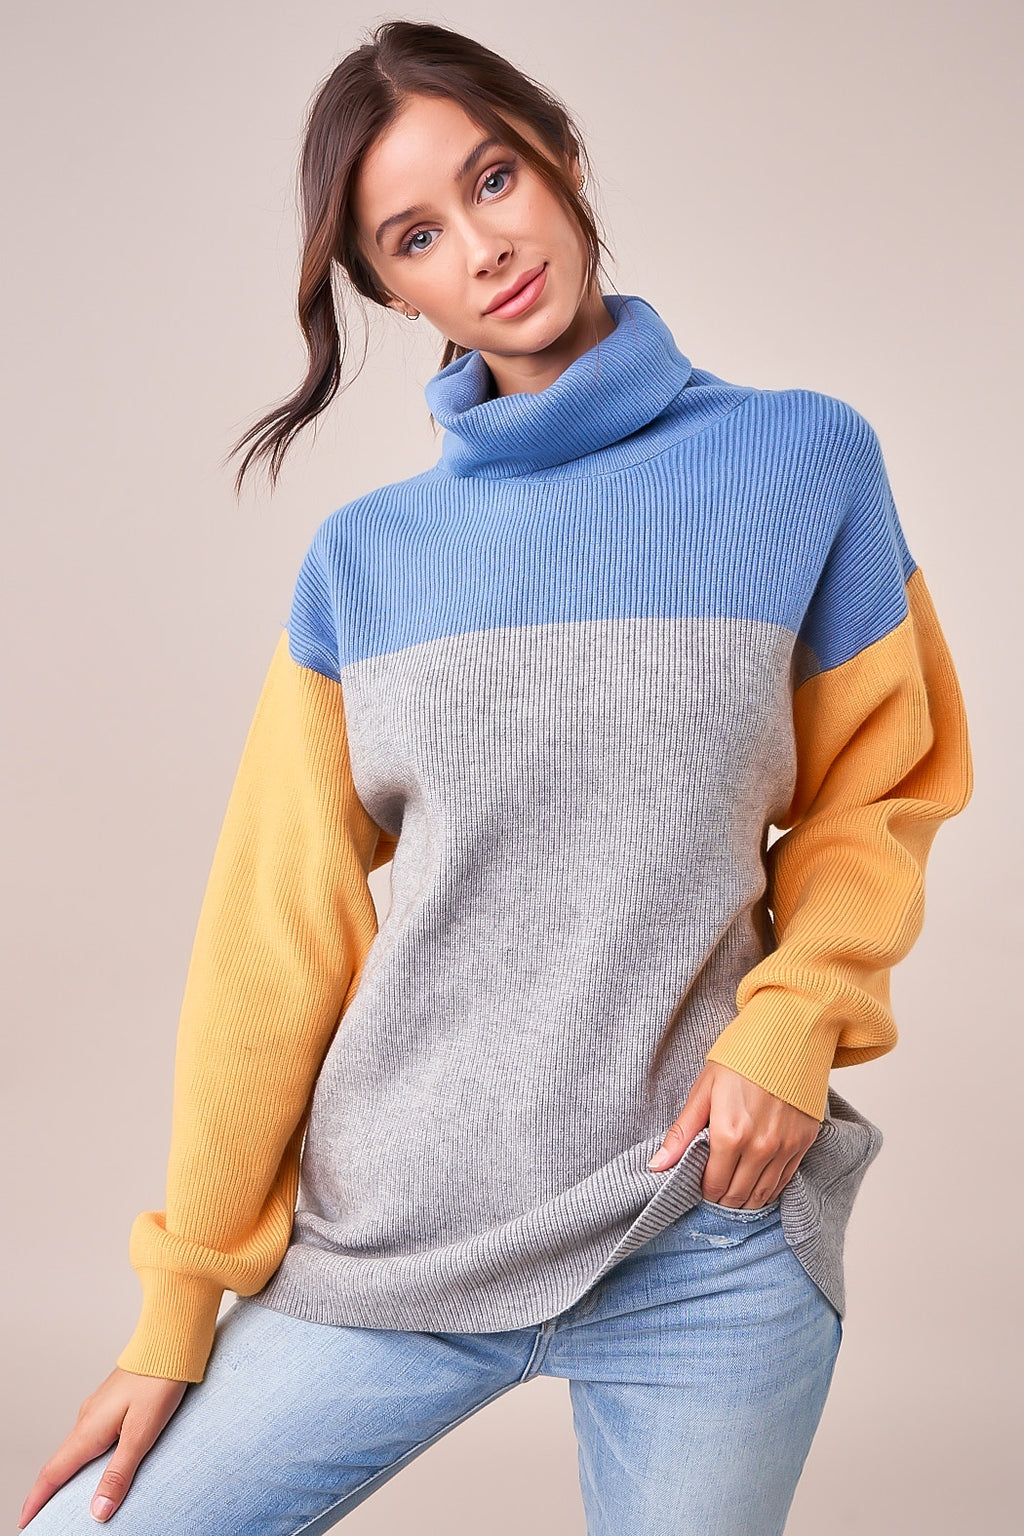 Sidnie Color Block Mock Neck Sweater